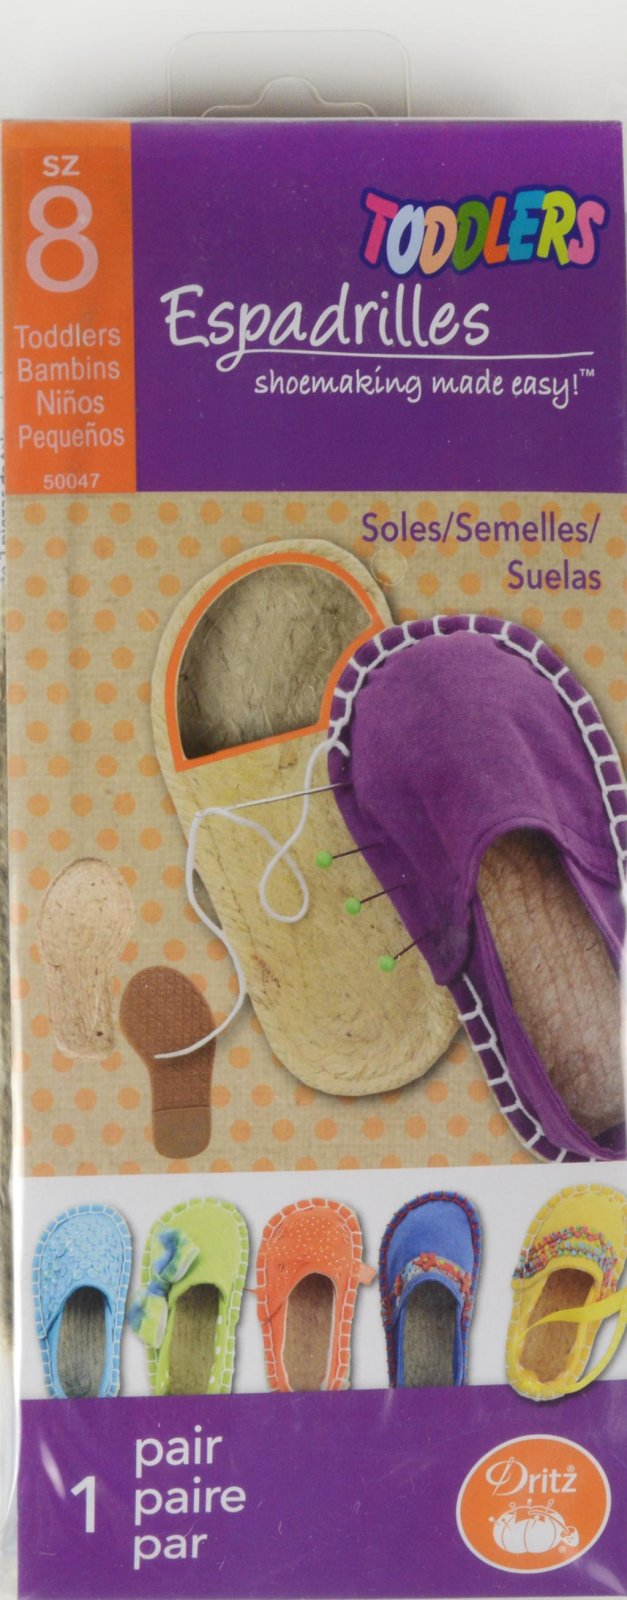 Espadrilles Shoemaking Toddlers Size 8